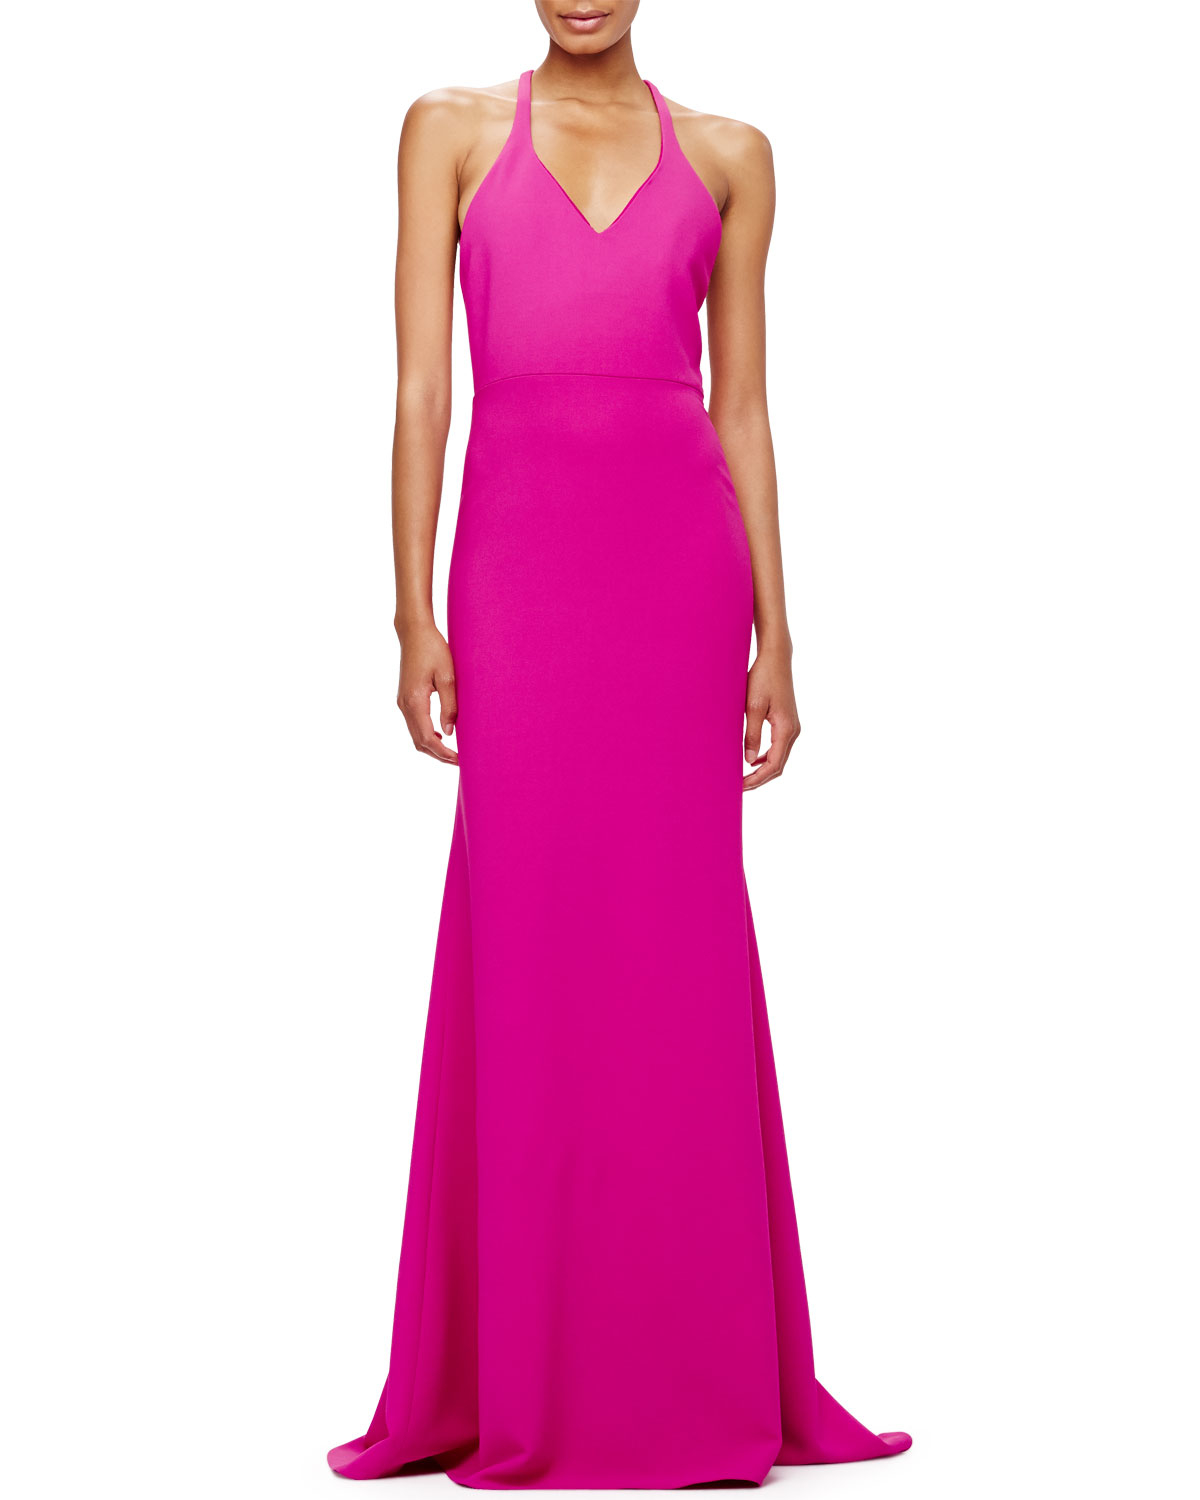 Lyst - Calvin Klein V-neck Crepe T-back Gown in Purple